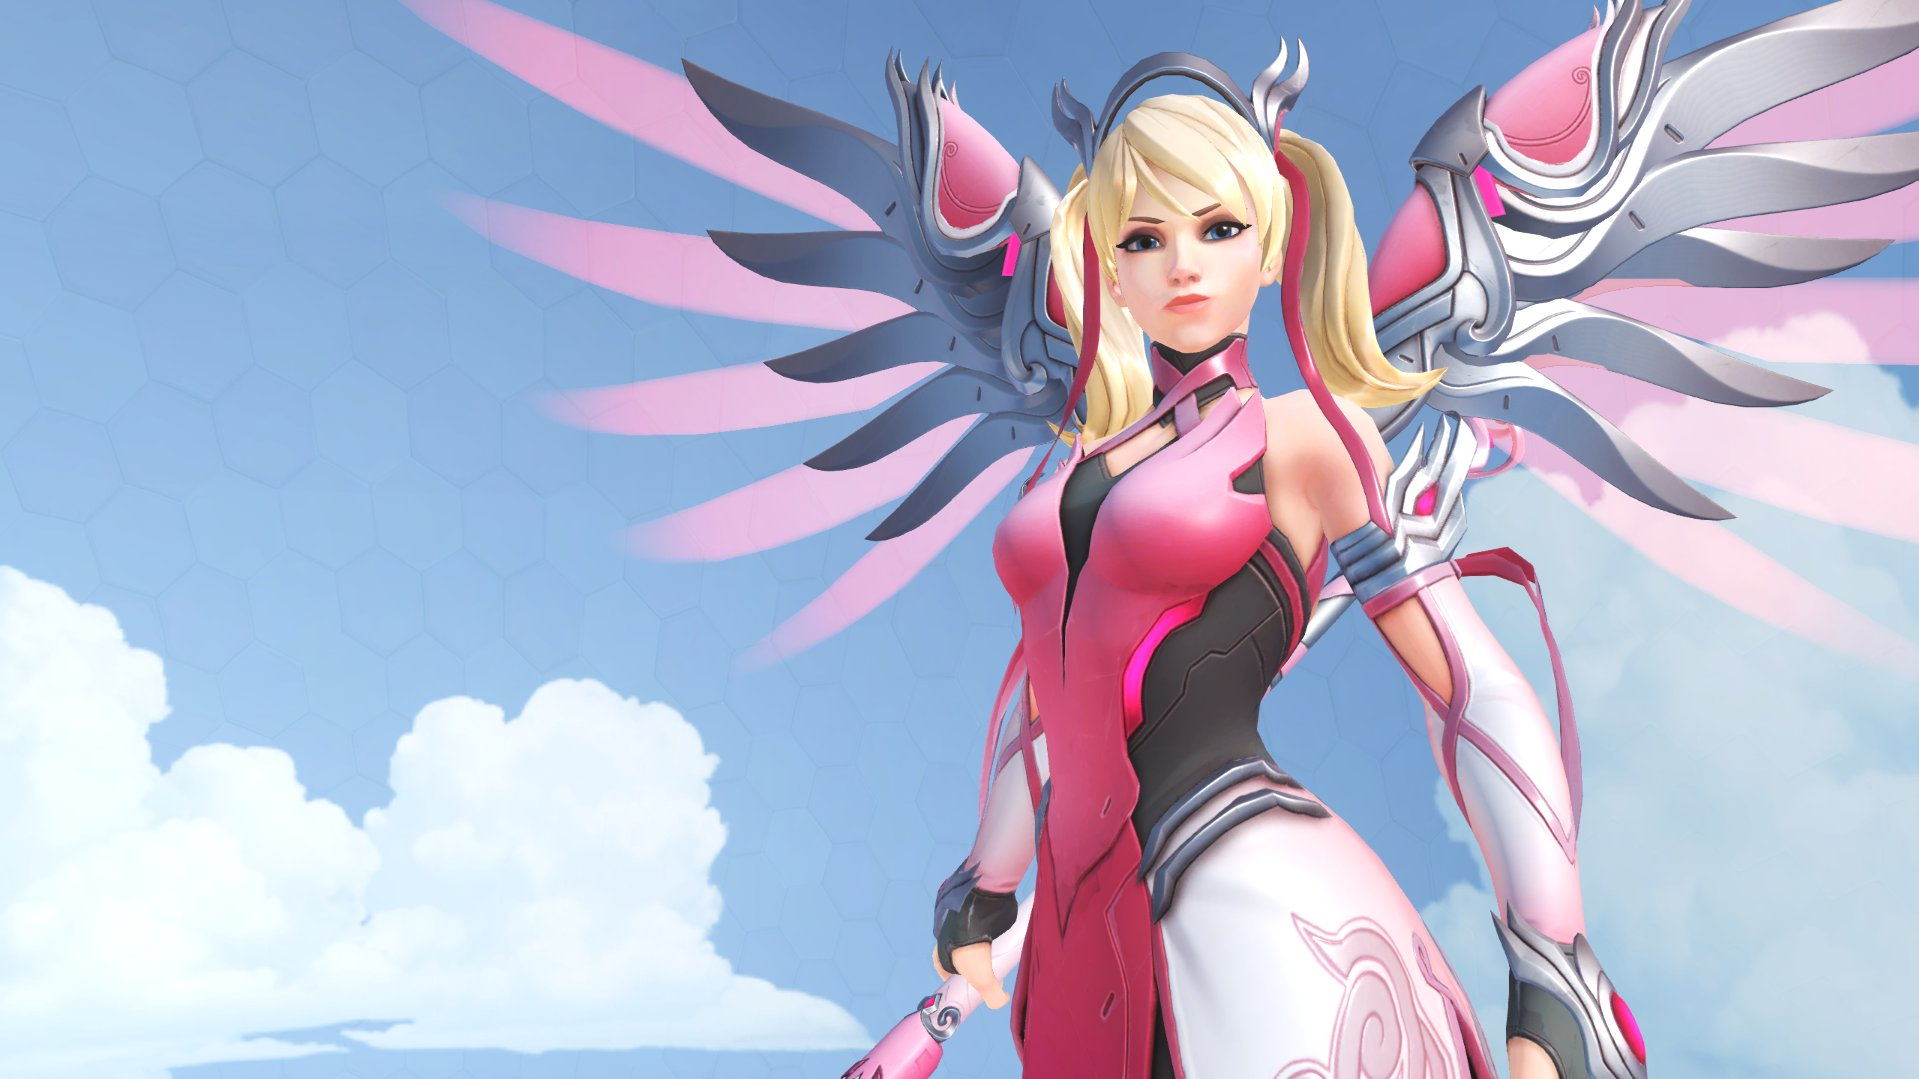 Sony says they're not making any profits from the Overwatch charity Mercy skin screenshot